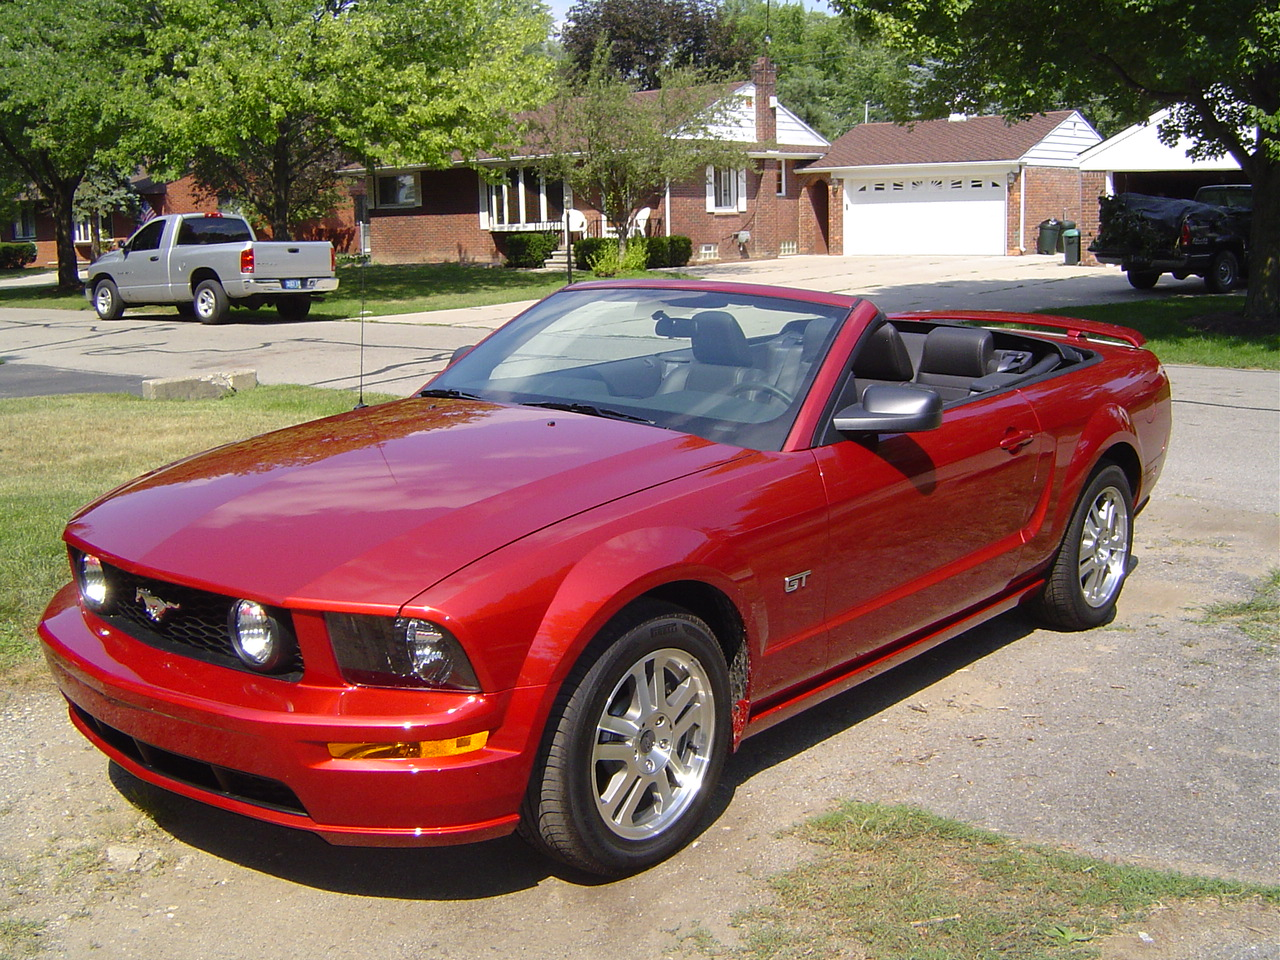 2005 Ford Mustang - Exterior Pictures - CarGurus